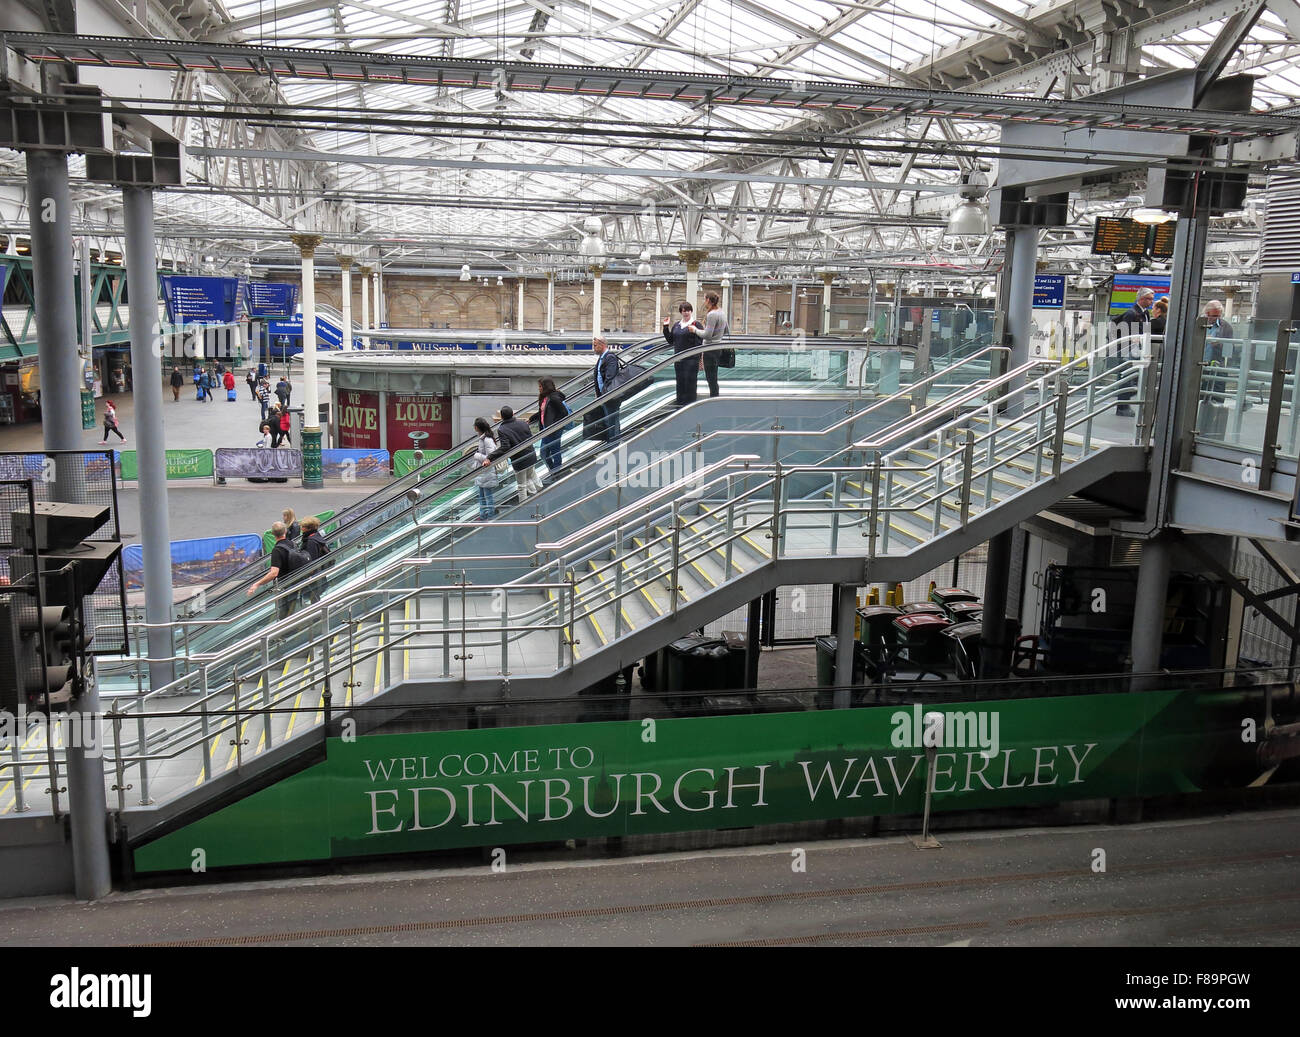 Main,City,Centre,Terminus,transit,transport,train,travel,inside,interior,Scotrail,British,Rail,BR,Franchise,Network,people,passenger,passengers,customers,terminal,ECML,East,Coast,Line,concourse,departure,Waverley,Railway,Station,Princes,main station,British Rail,Network rail,Princes St,GoTonySmith,St,Street,Buy Pictures of,Buy Images Of